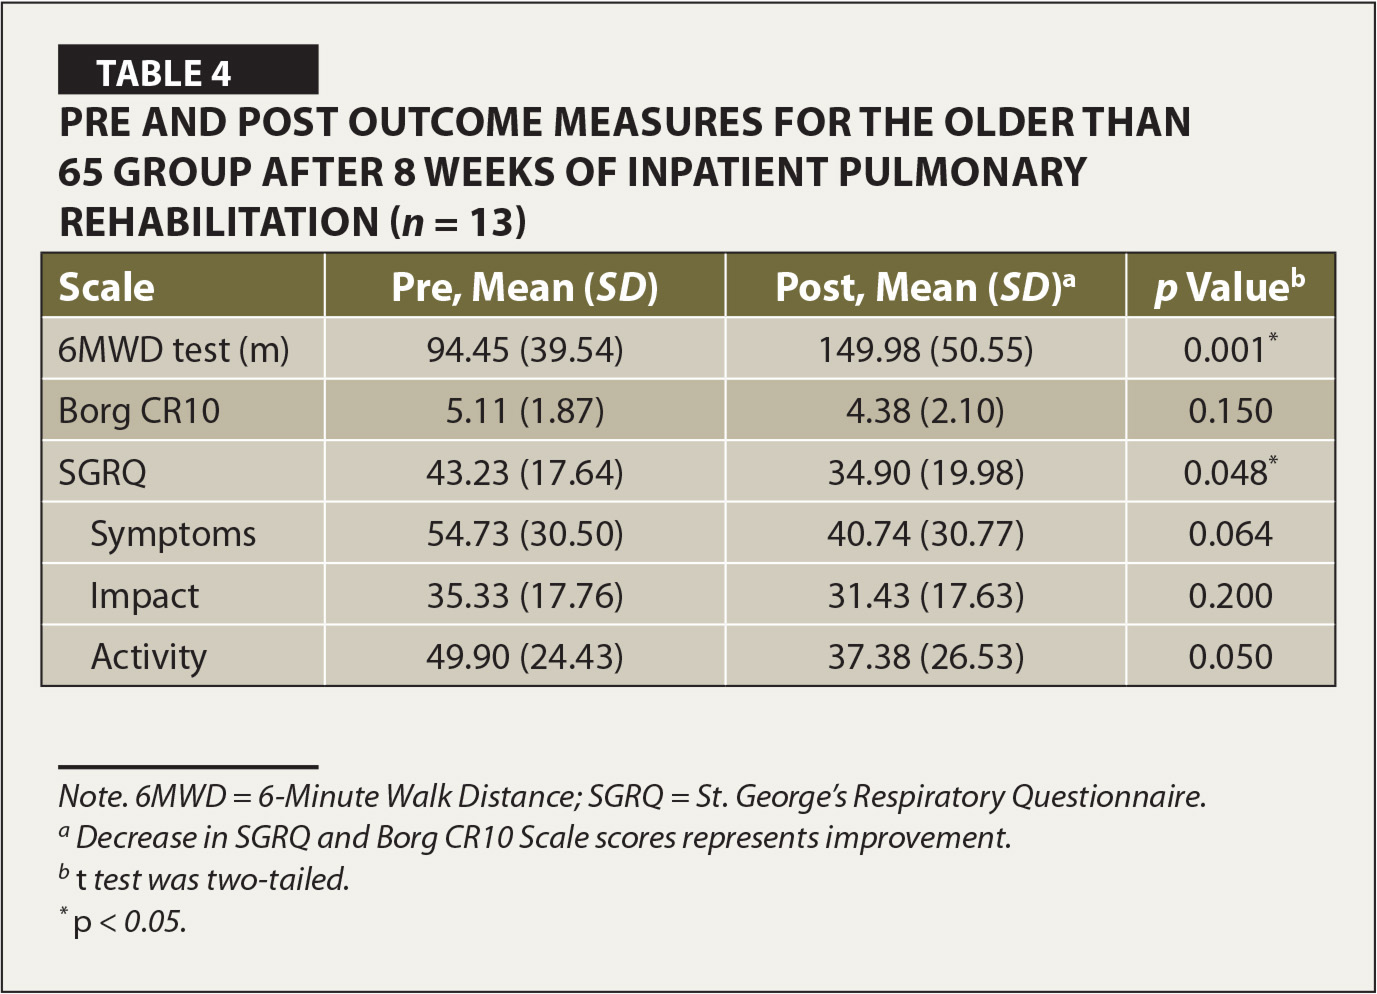 Pre and Post Outcome Measures for the Older than 65 Group after 8 Weeks of Inpatient Pulmonary Rehabilitation (n = 13)